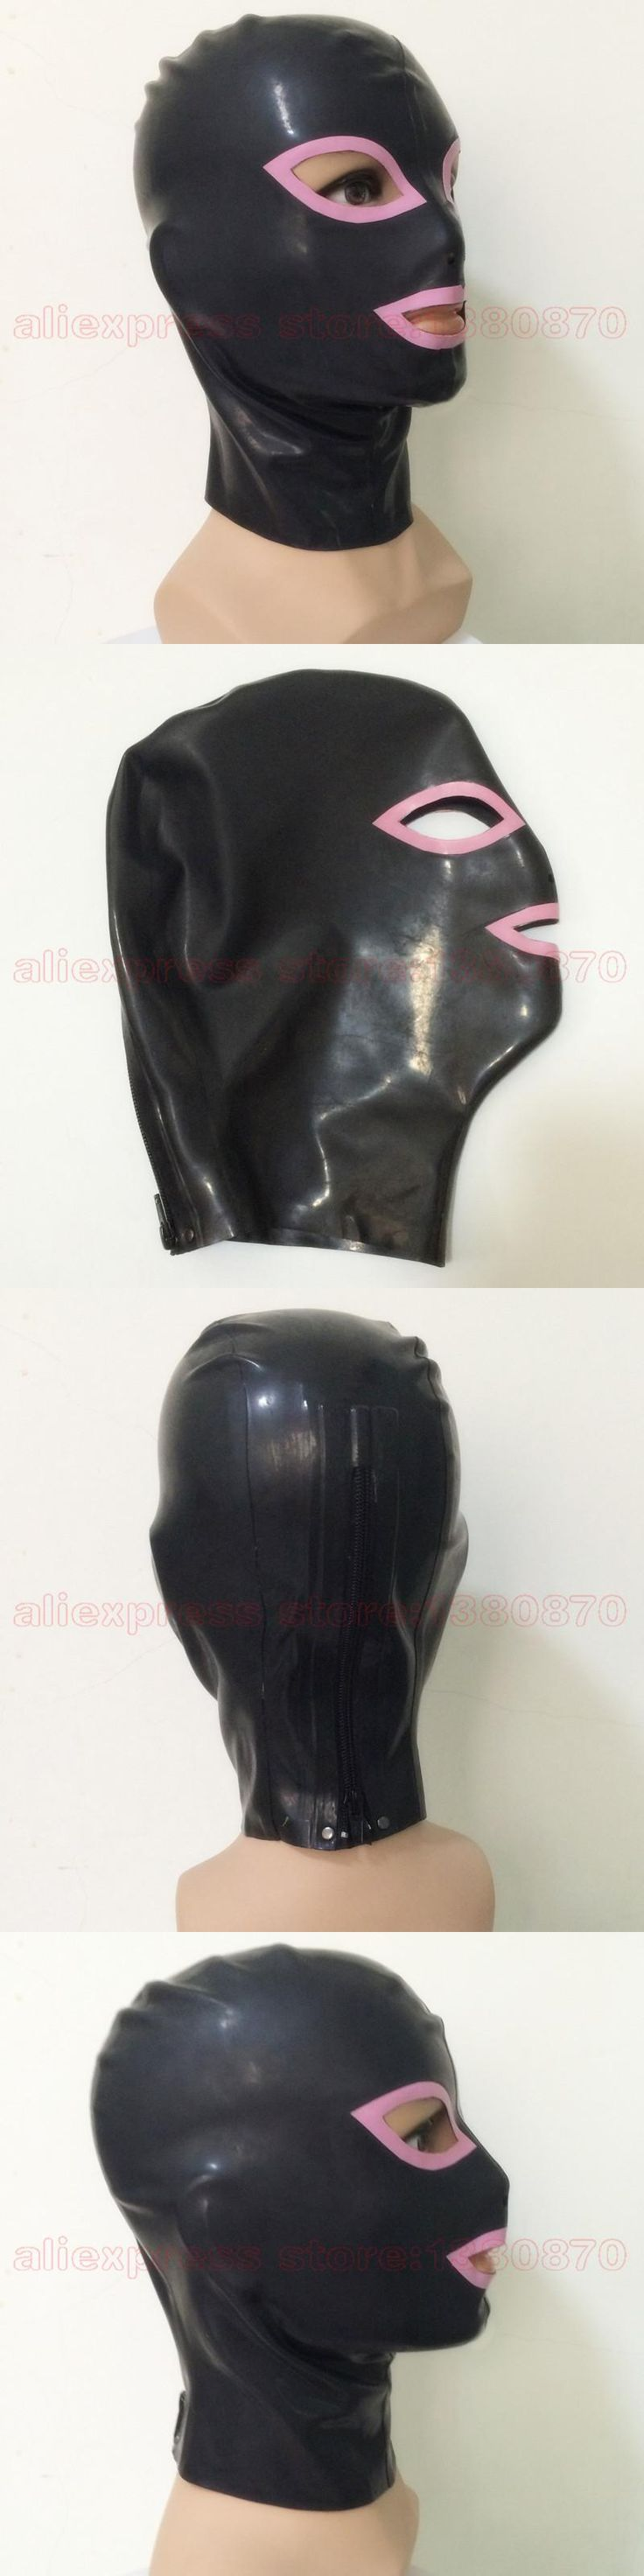 Unisex Sexy Latex Hood Rubber Latex Black and Pink  Mask  LM011A